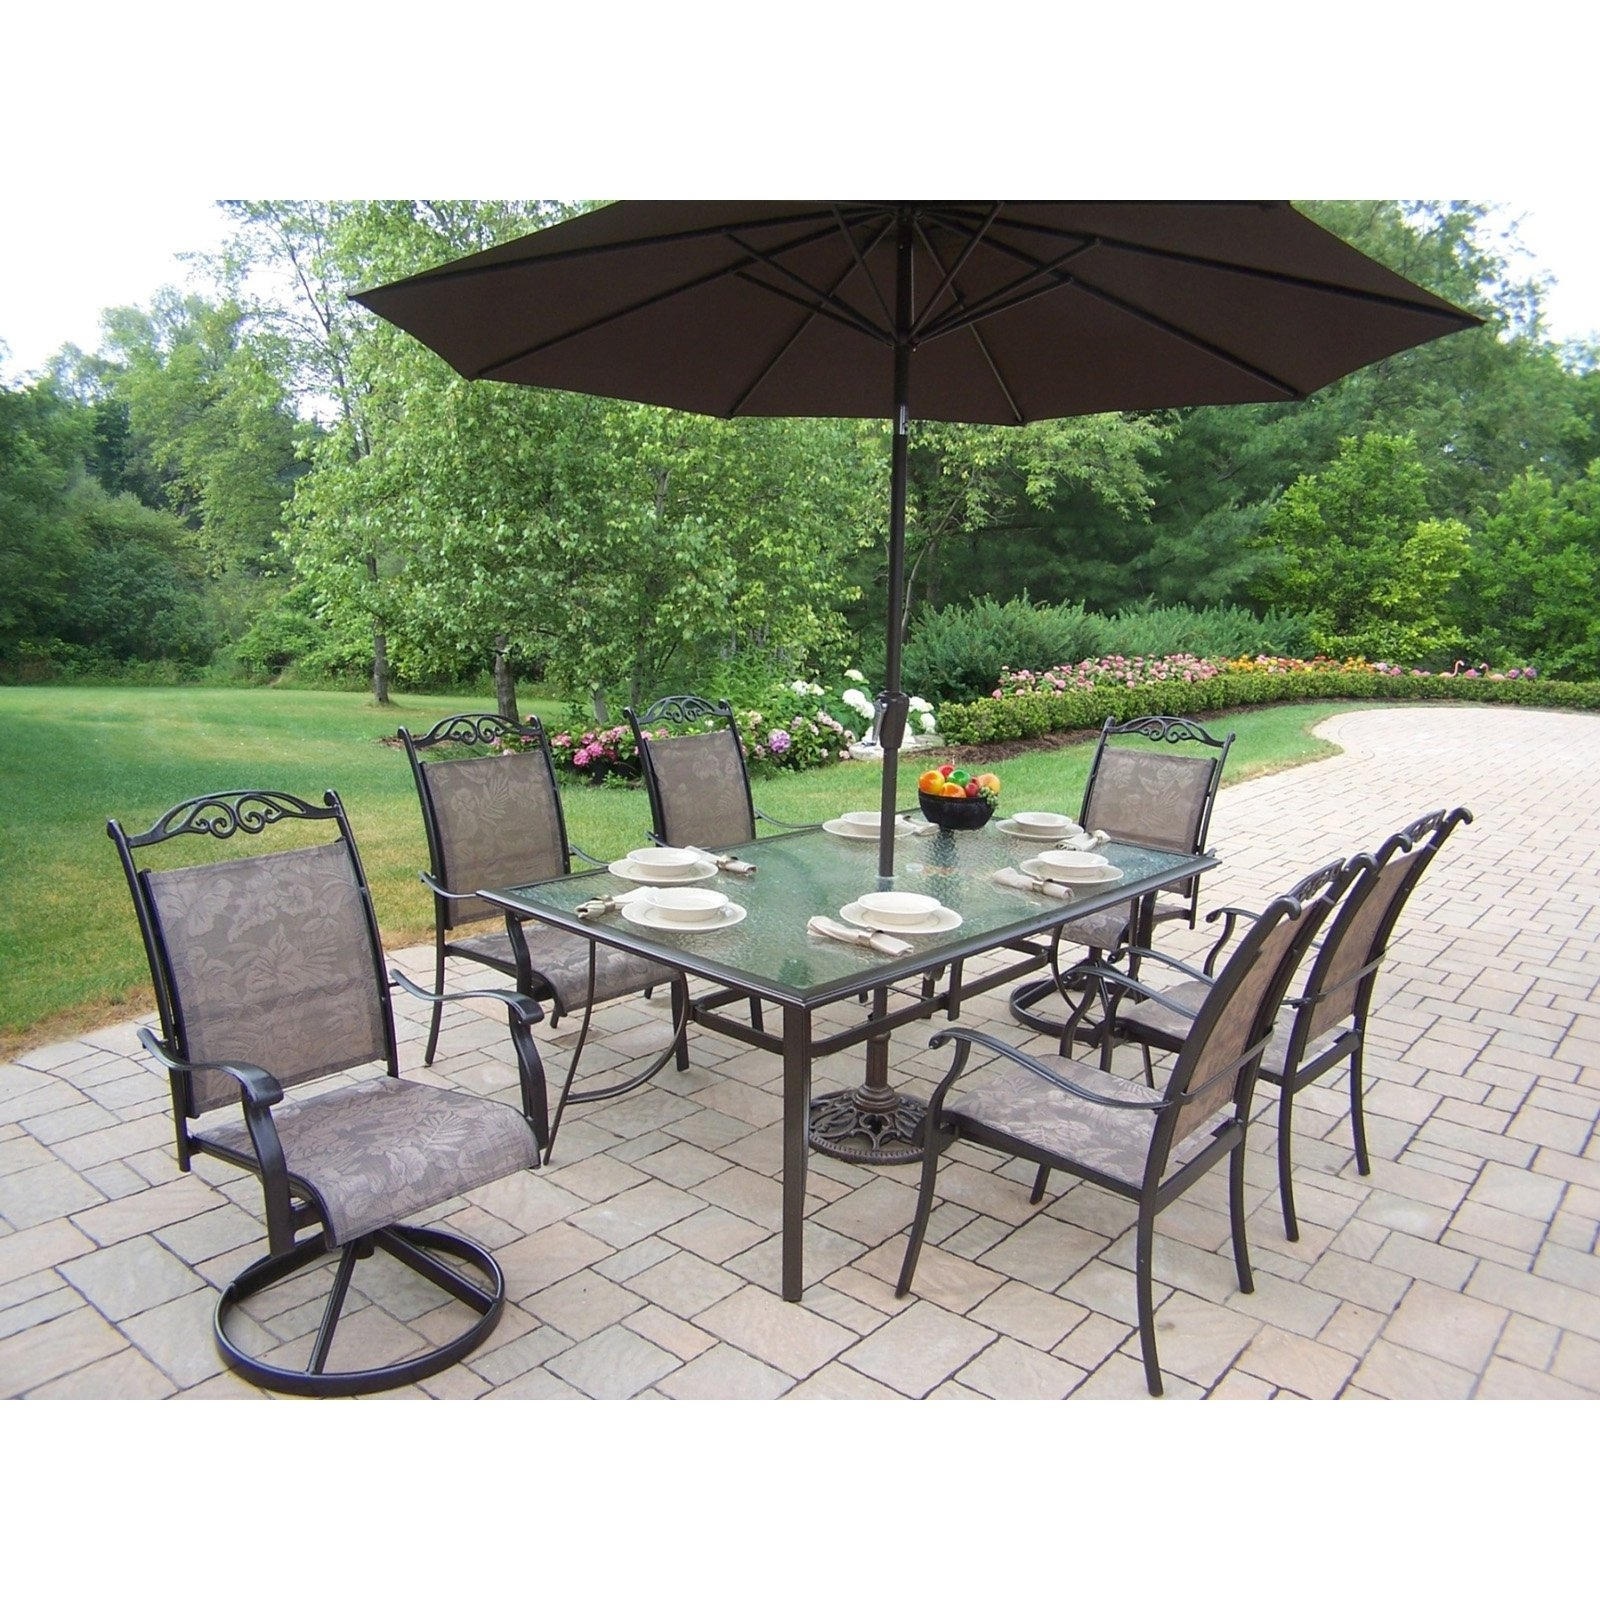 Patio Ideas Outdoor Dining Sets With Umbrella Small Piece Set Round In Preferred Patio Table Sets With Umbrellas (View 14 of 20)